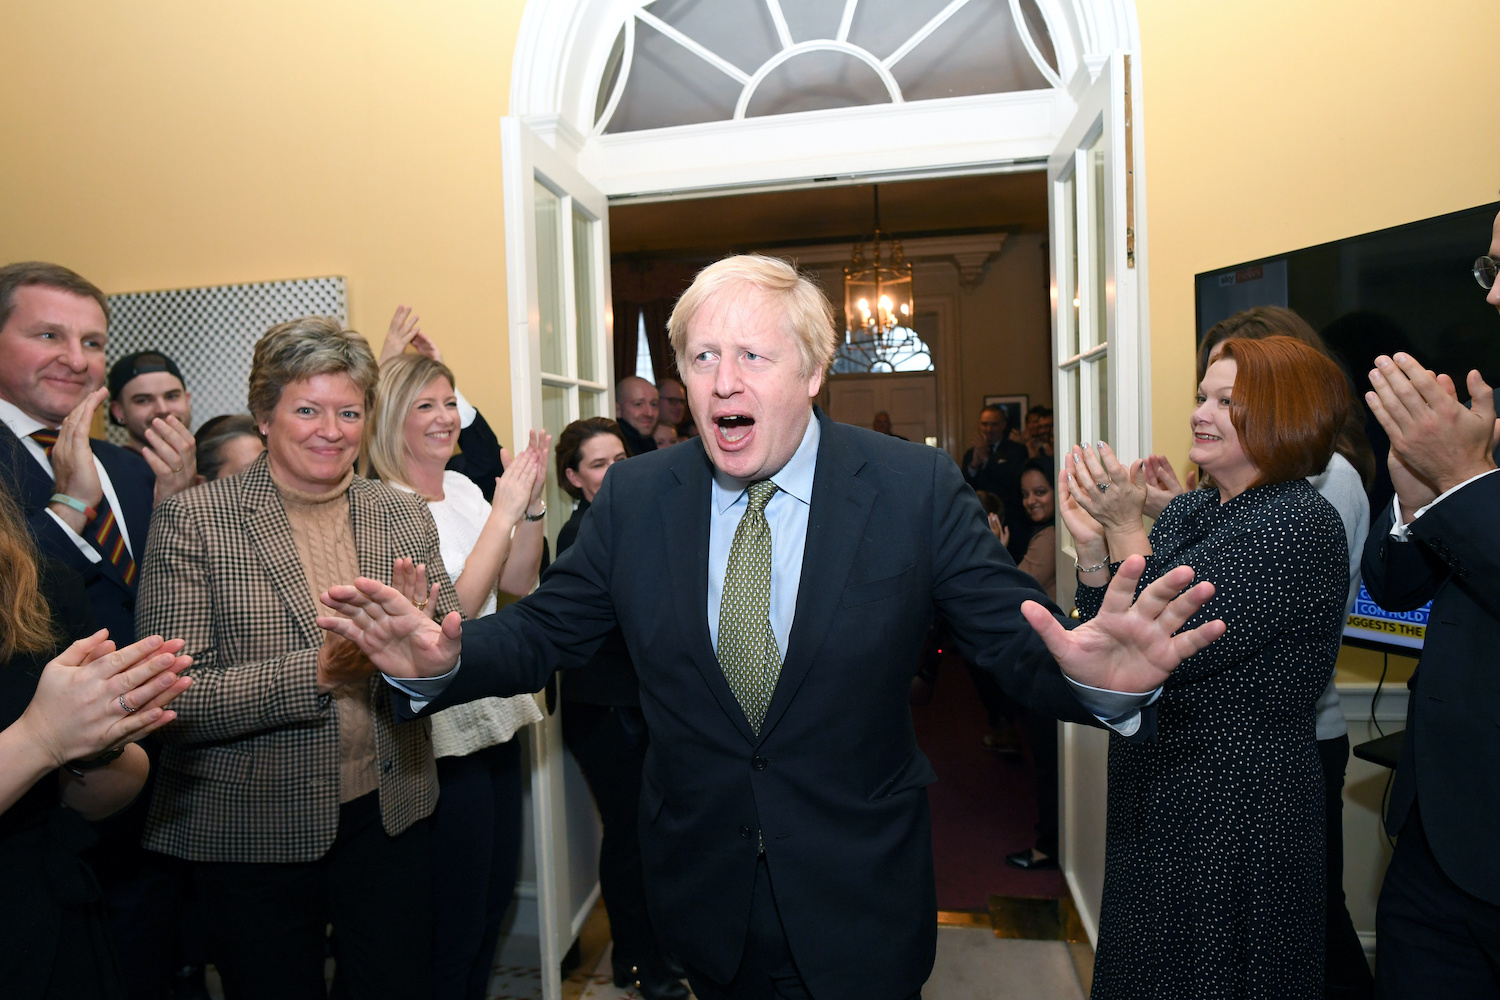 Staff applaud Prime Minister Boris Johnson as he arrives back at Downing Street after meeting Queen Elizabeth and accepting her invitation to form a new government after his Conservative Party won the biggest majority since Margaret Thatcher in 1987. (Reuters Photo)